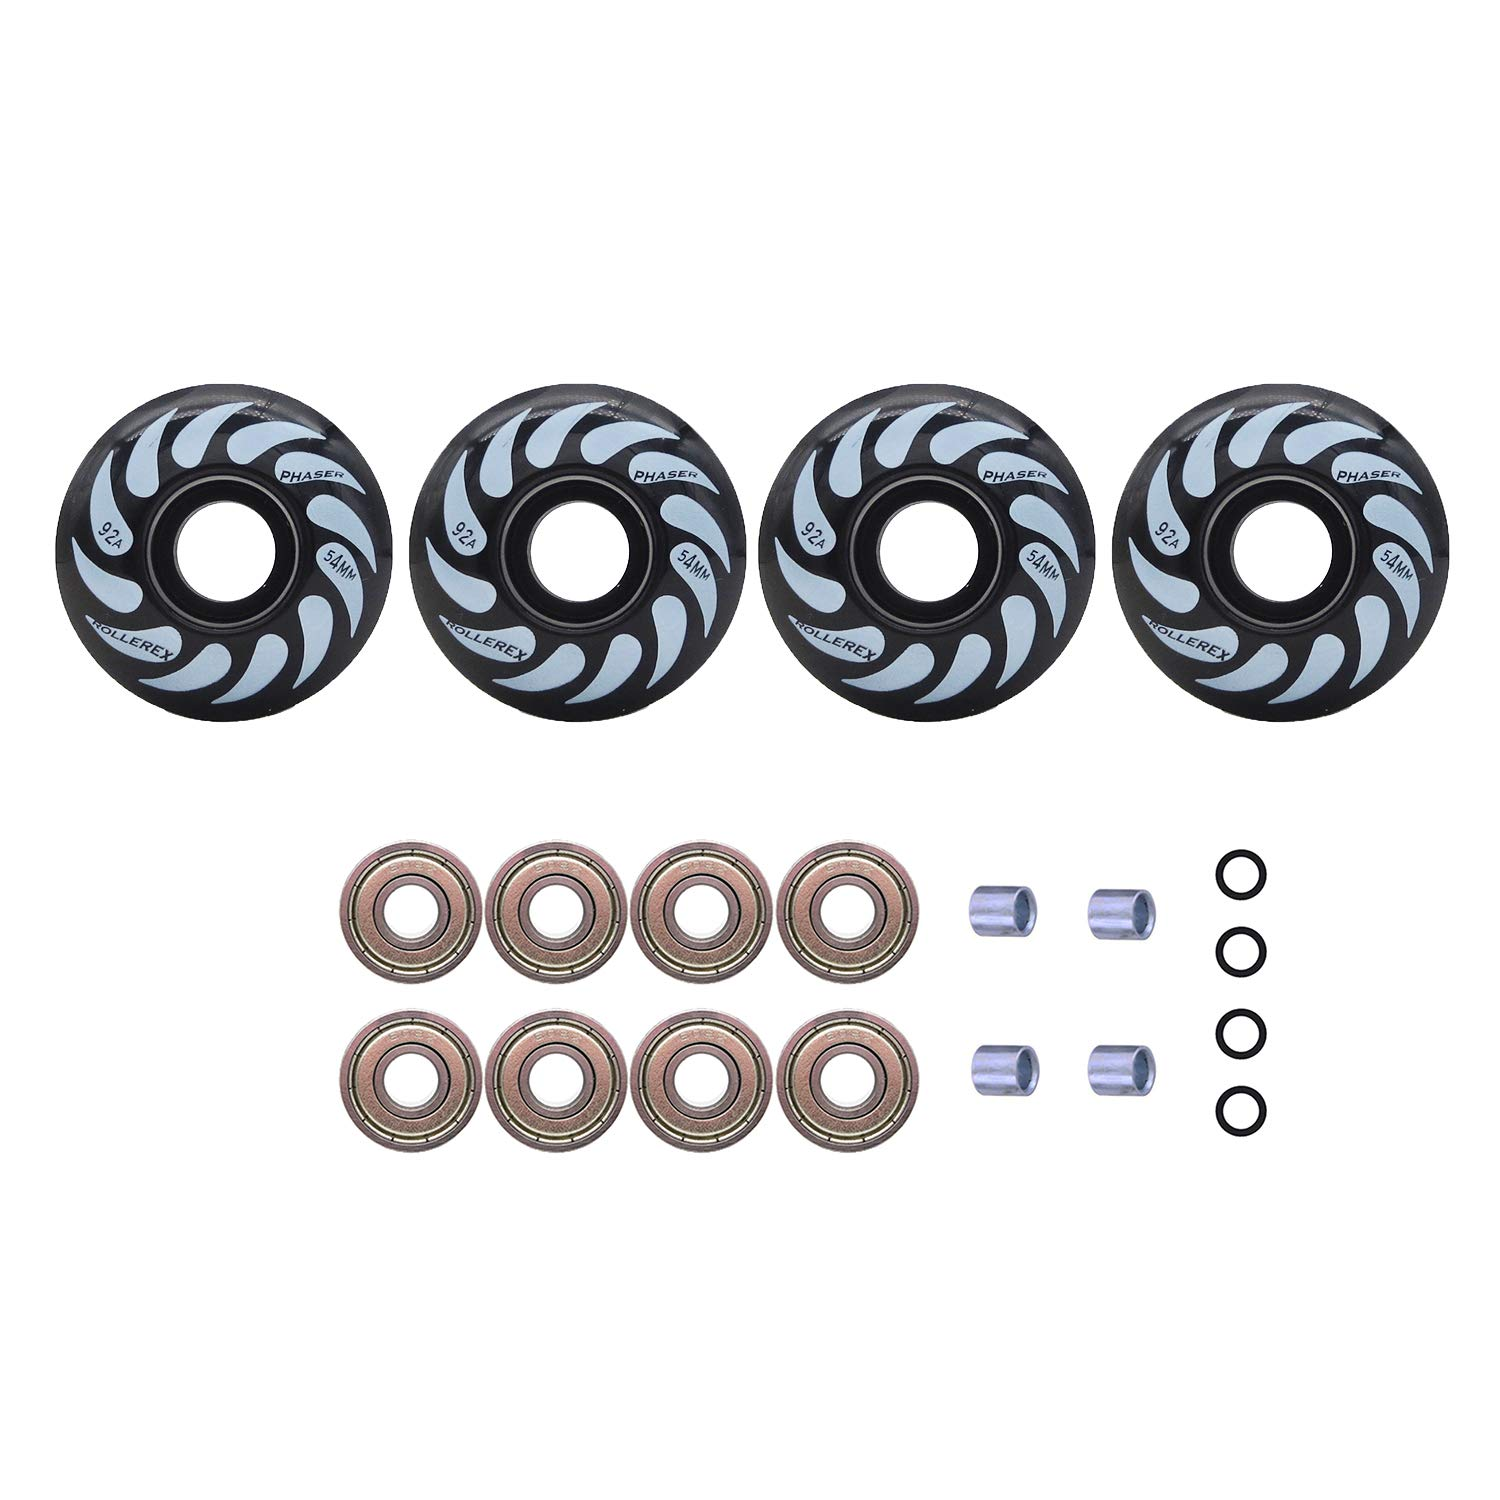 Rollerex Phaser 92A 54mm Skateboard Wheels (Steel Black (w/Bearings, spacers and washers), 54mm) by Rollerex